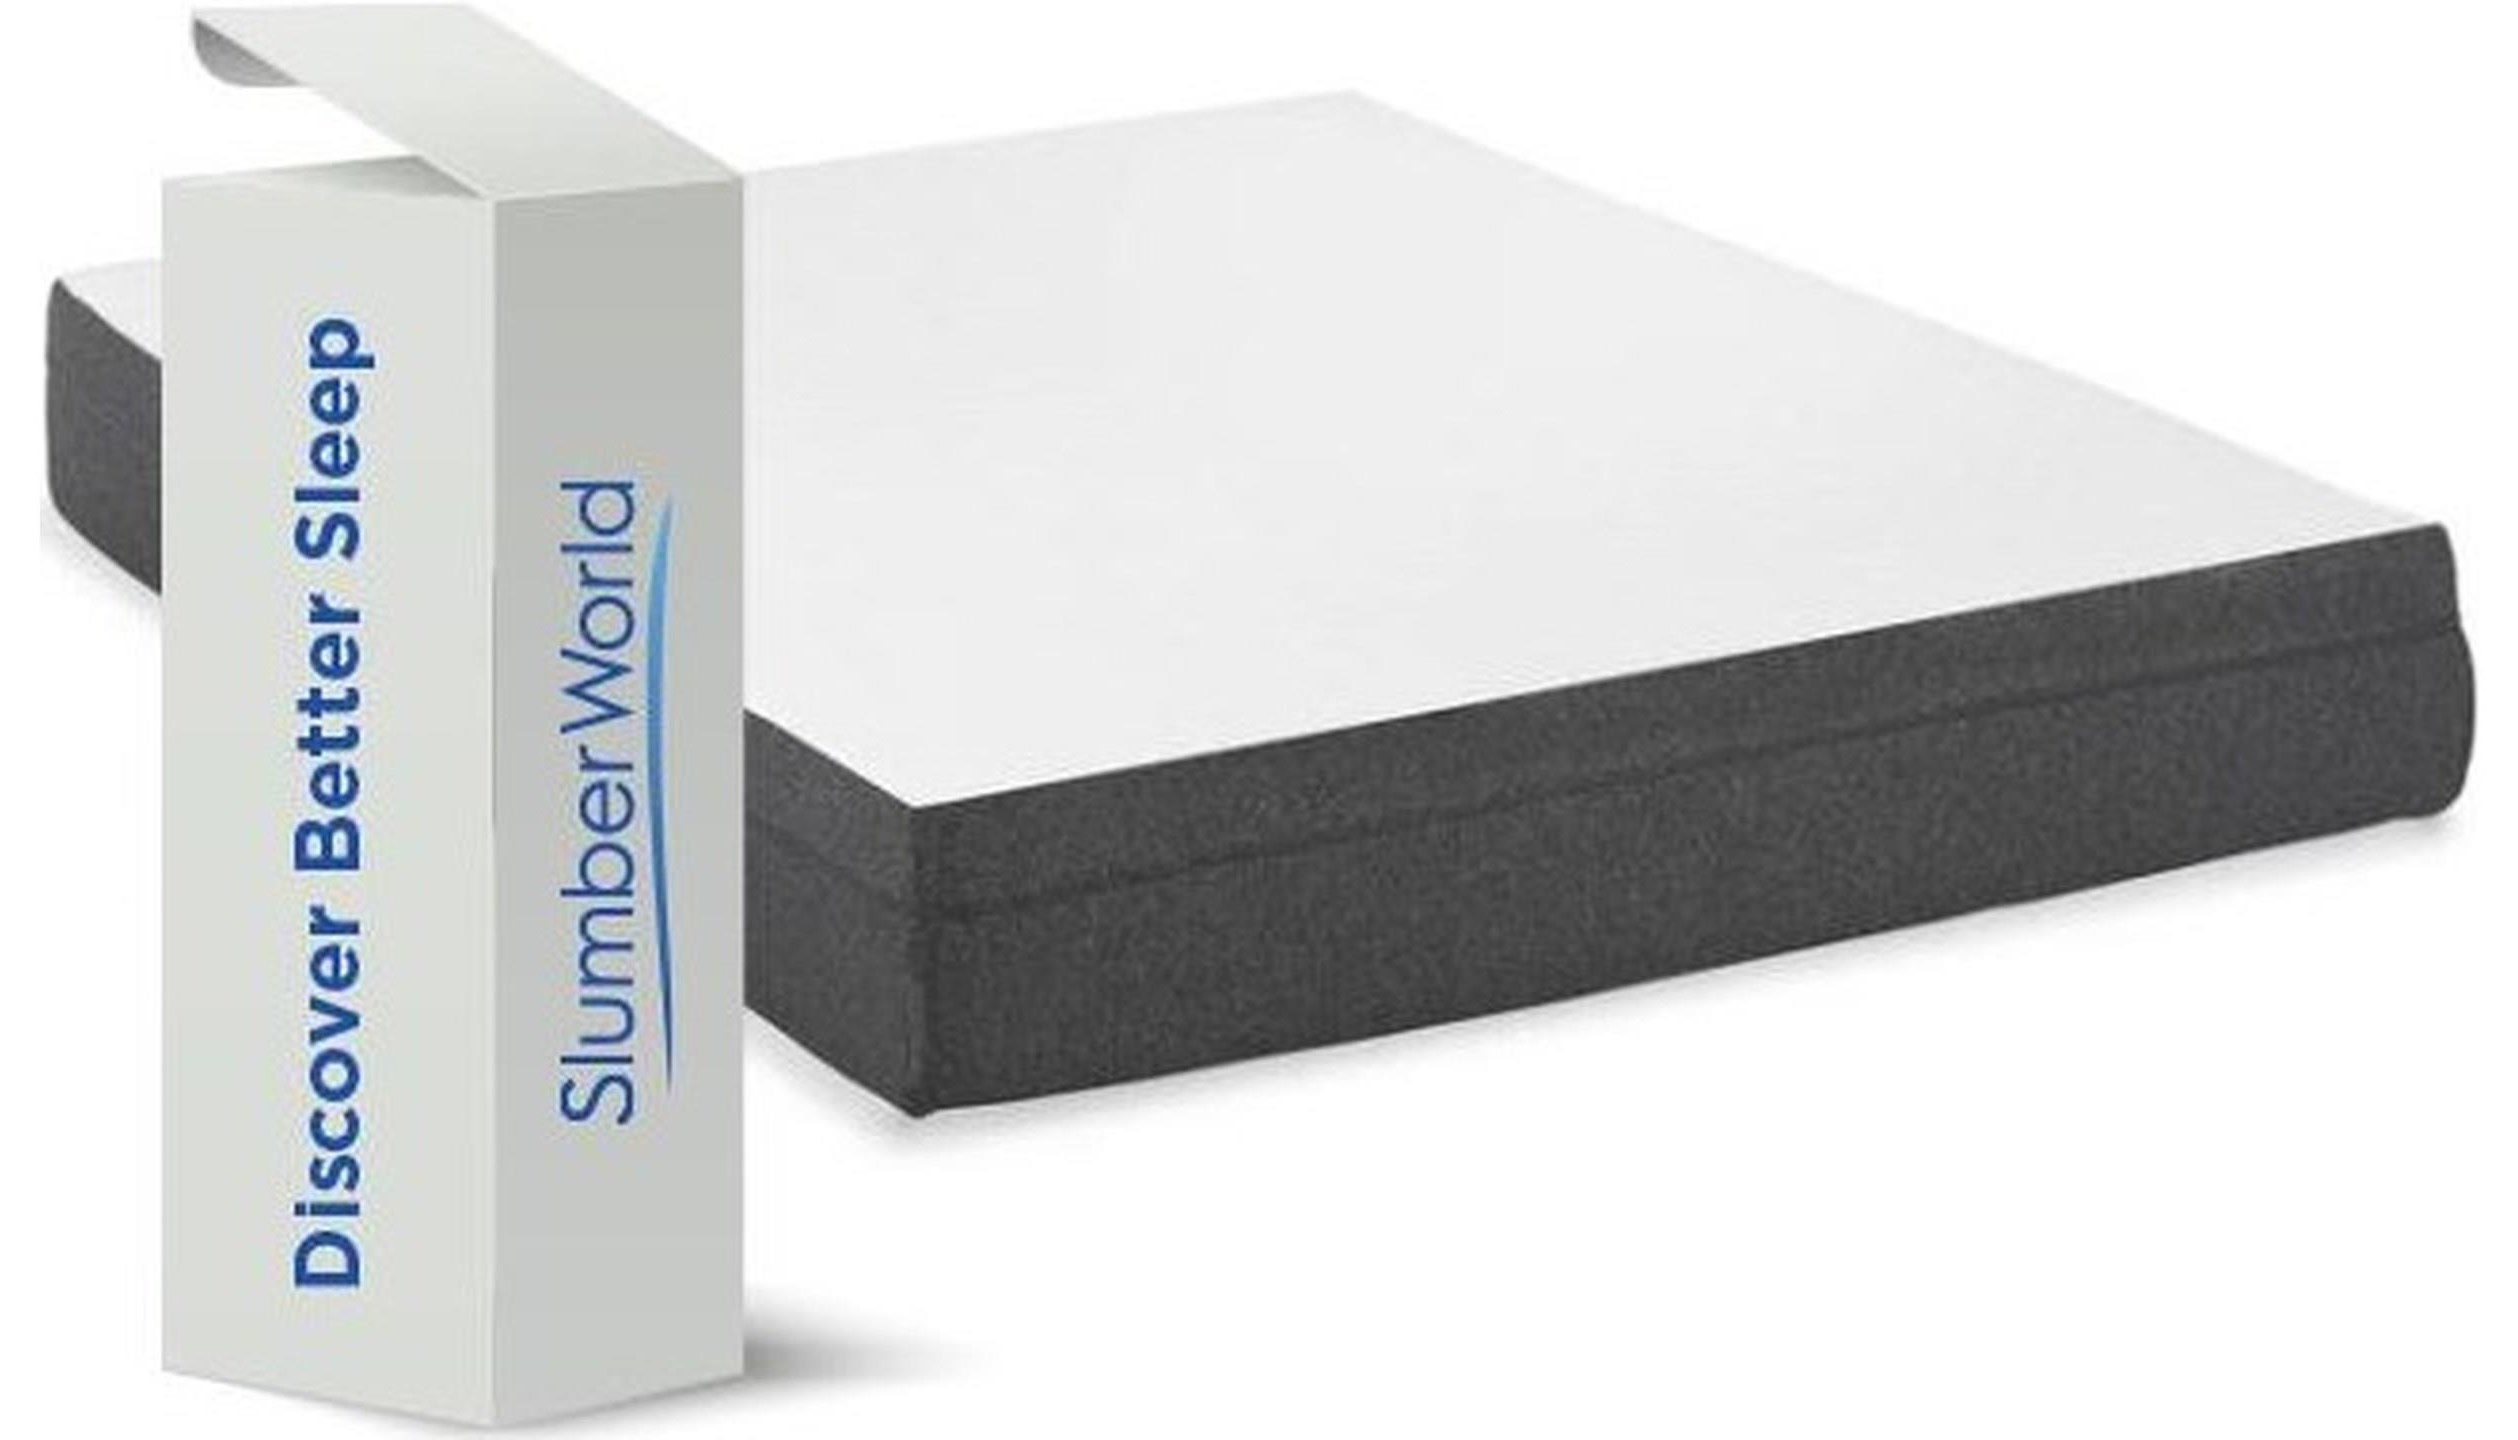 SB10 SB10 Twin Hybrid Mattress in a Box by South Bay International at Red Knot